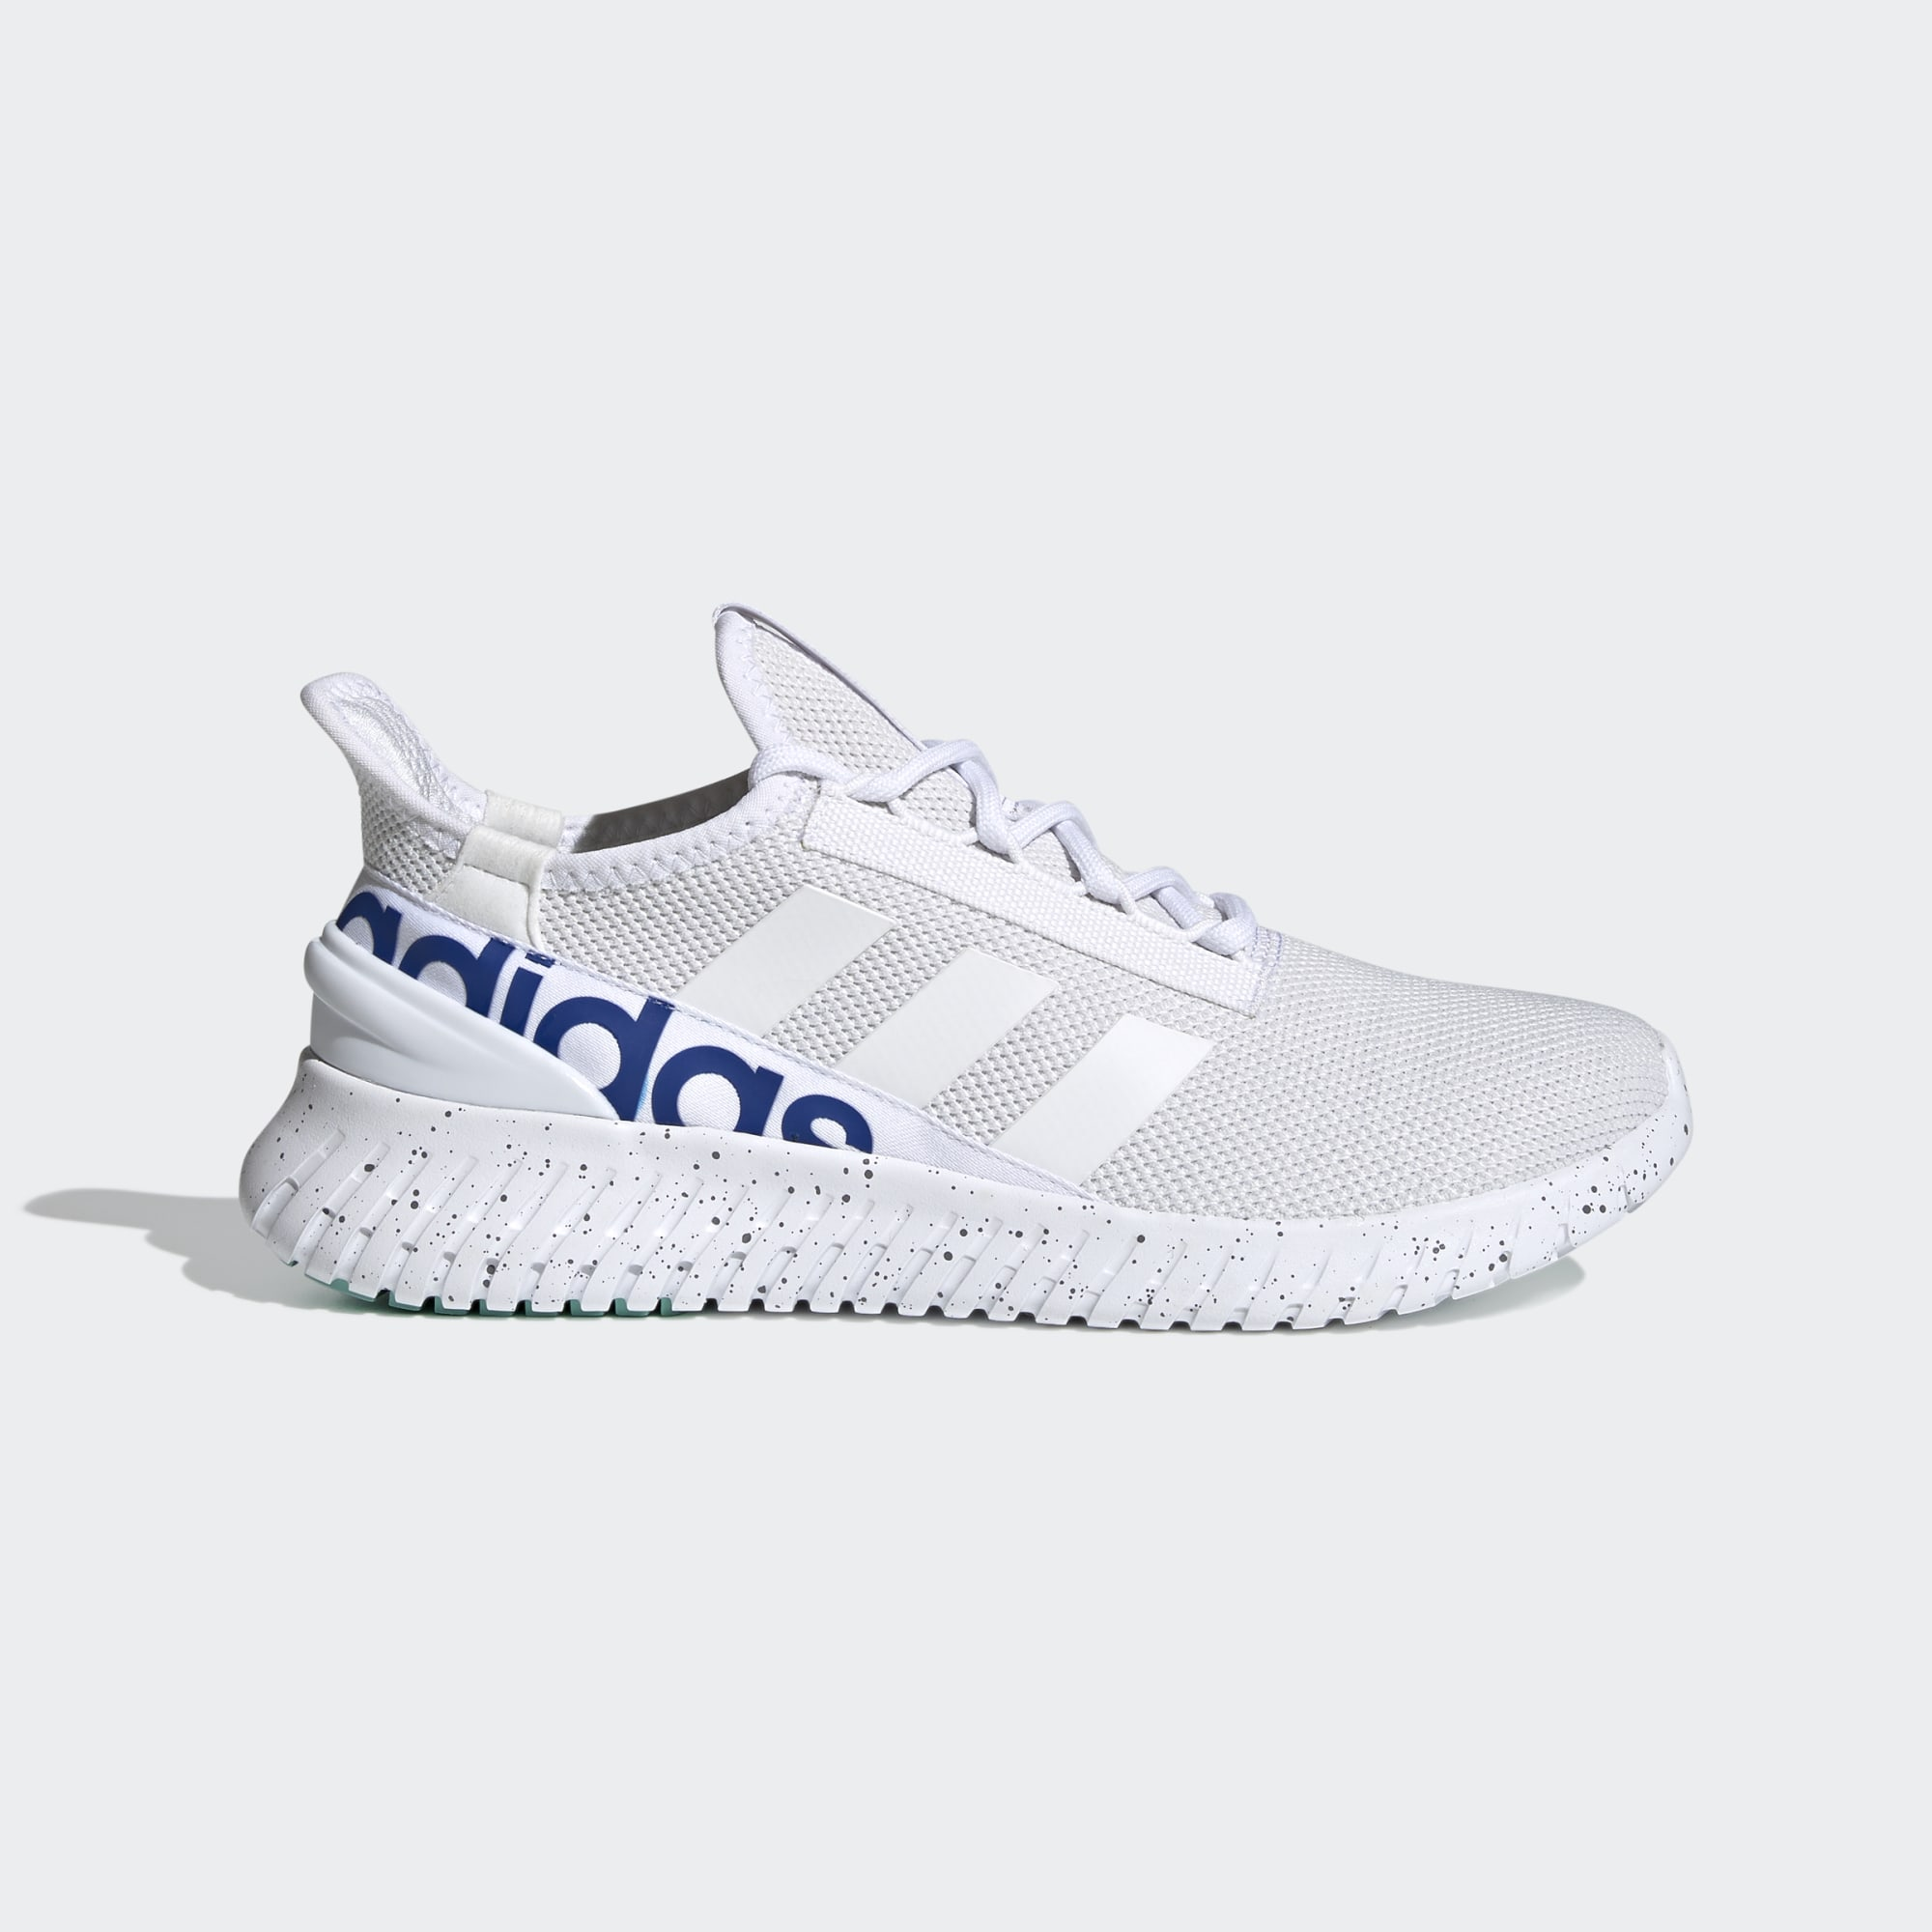 Kaptir_2.0_Shoes_White_H68090_01_standard.jpg